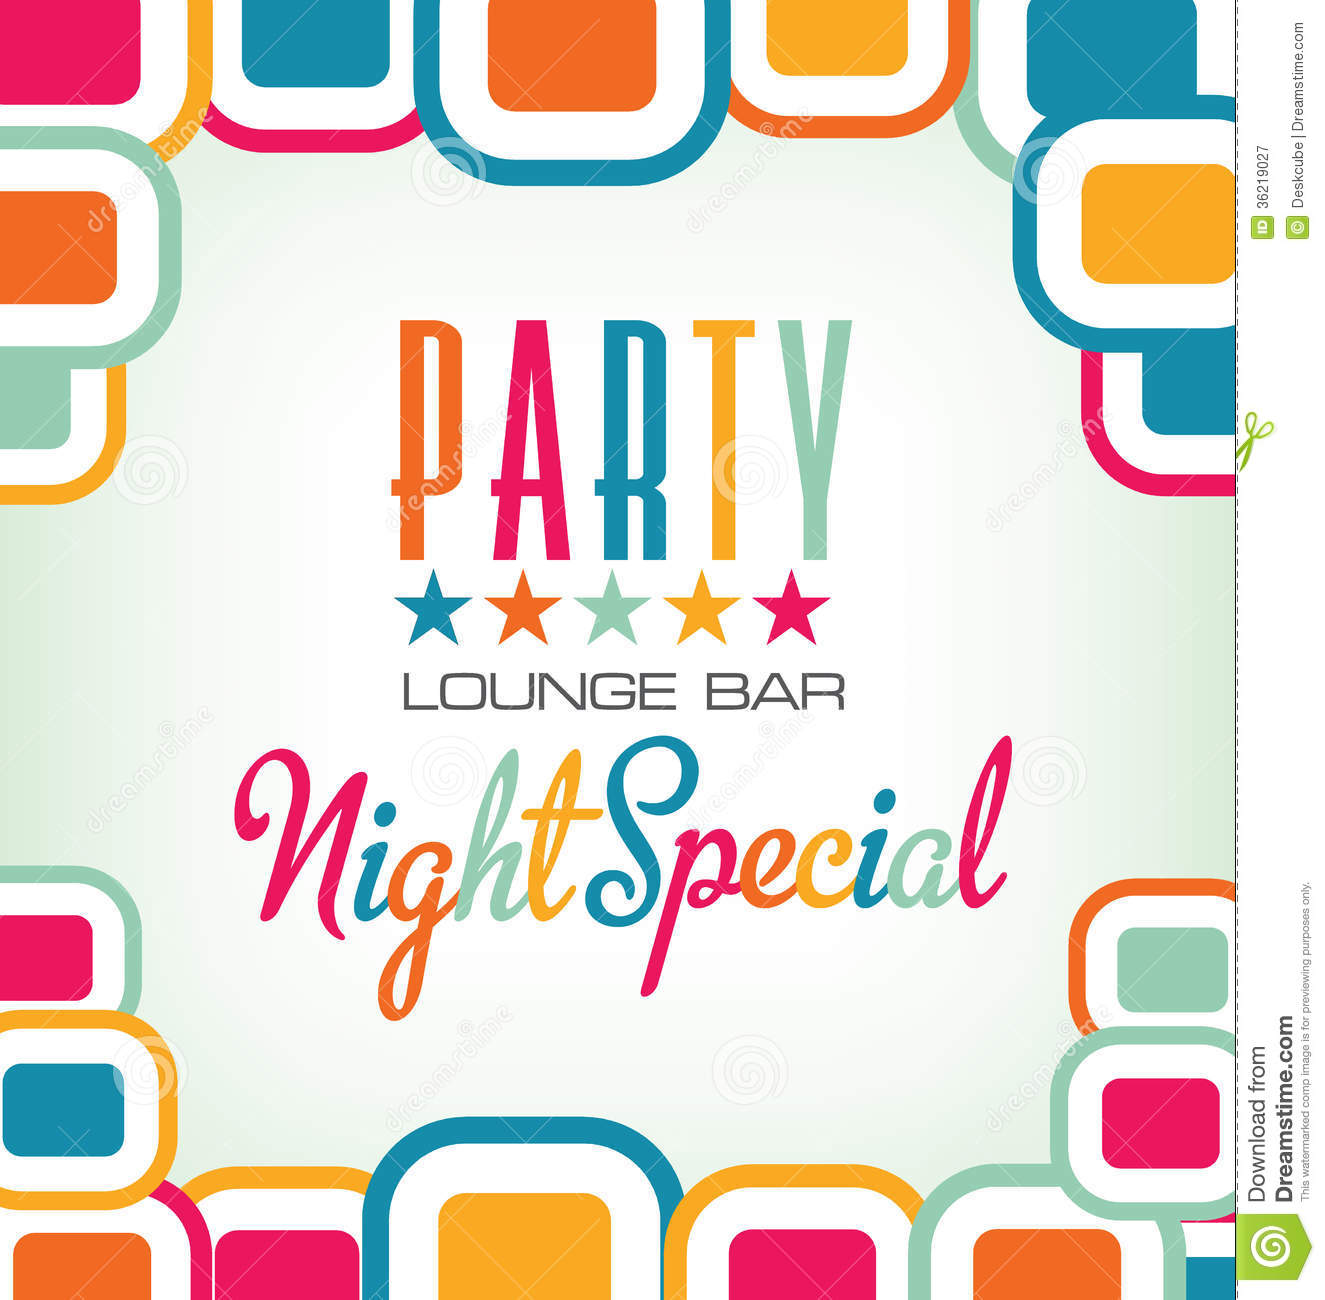 Cocktail Party Invitations was awesome invitations layout